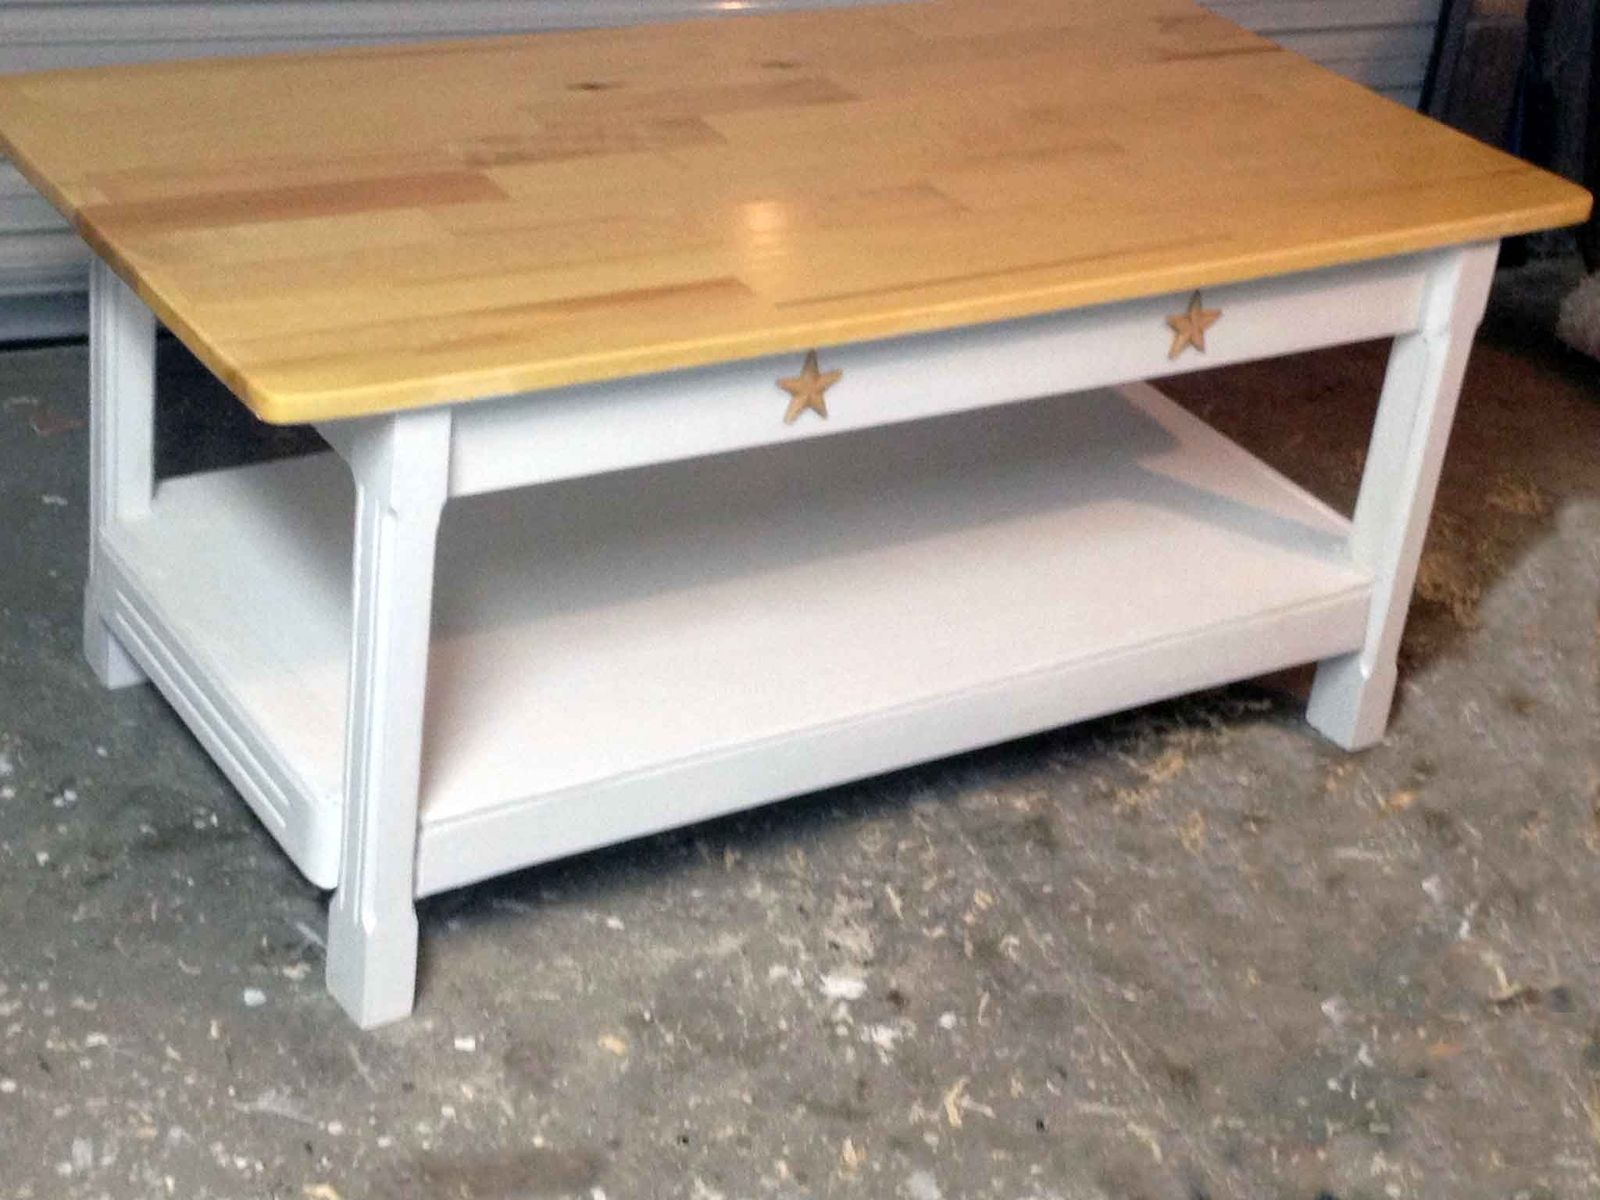 custom country style coffee table all solid wood furniture and end tables made laura ashley hamper sango dinnerware pipe desk ikea glass top conduit chairs small thin bedside